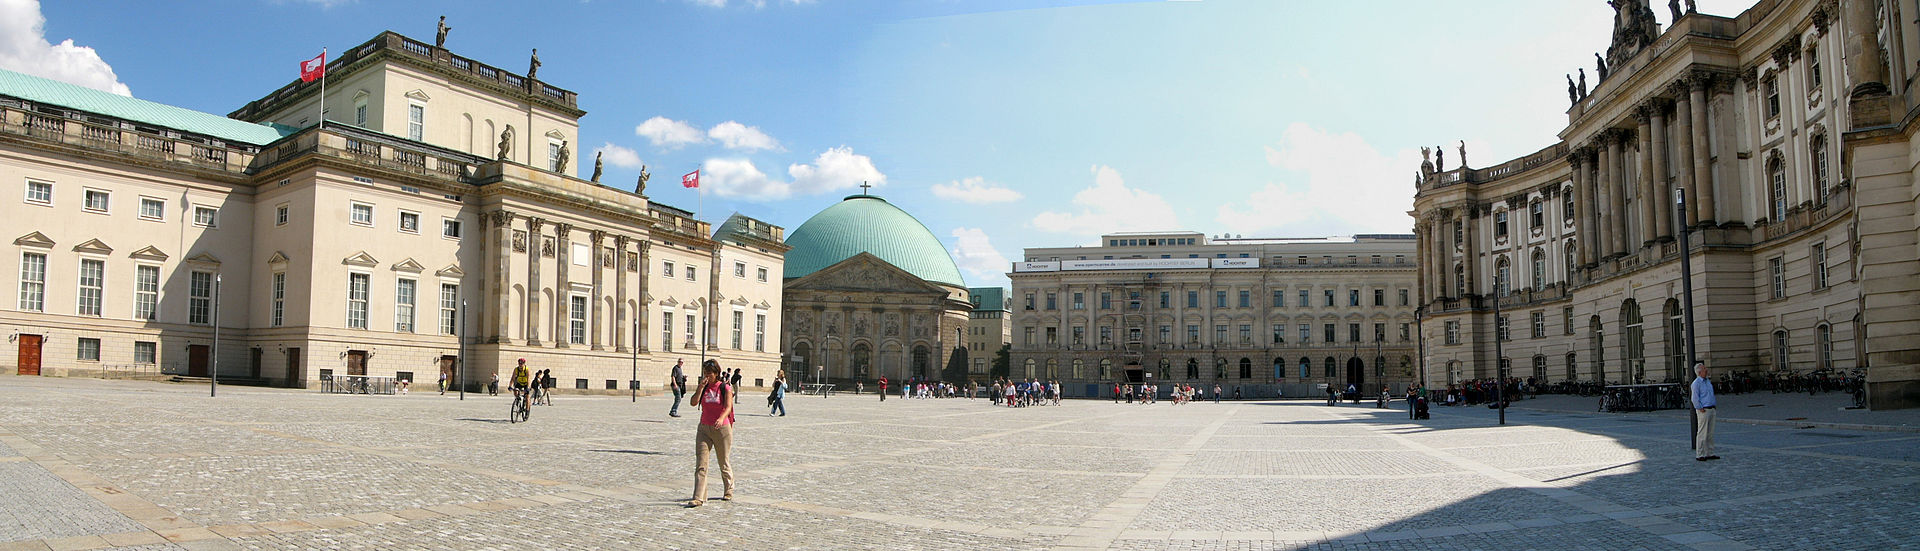 Bebelplatz looking South